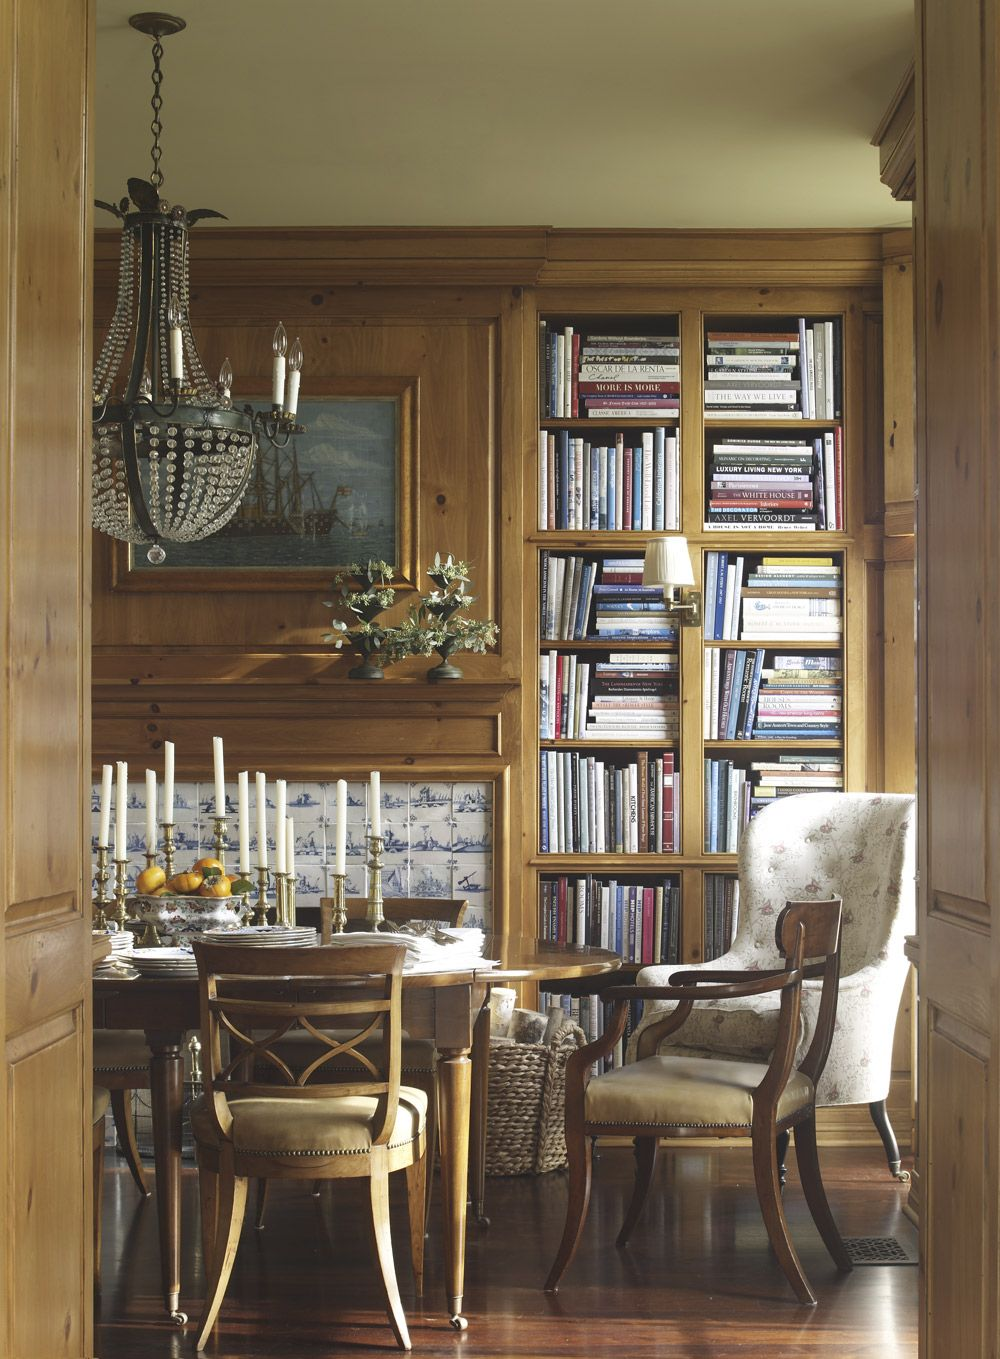 Anne library dinning room we could faux bois the paneling aoj